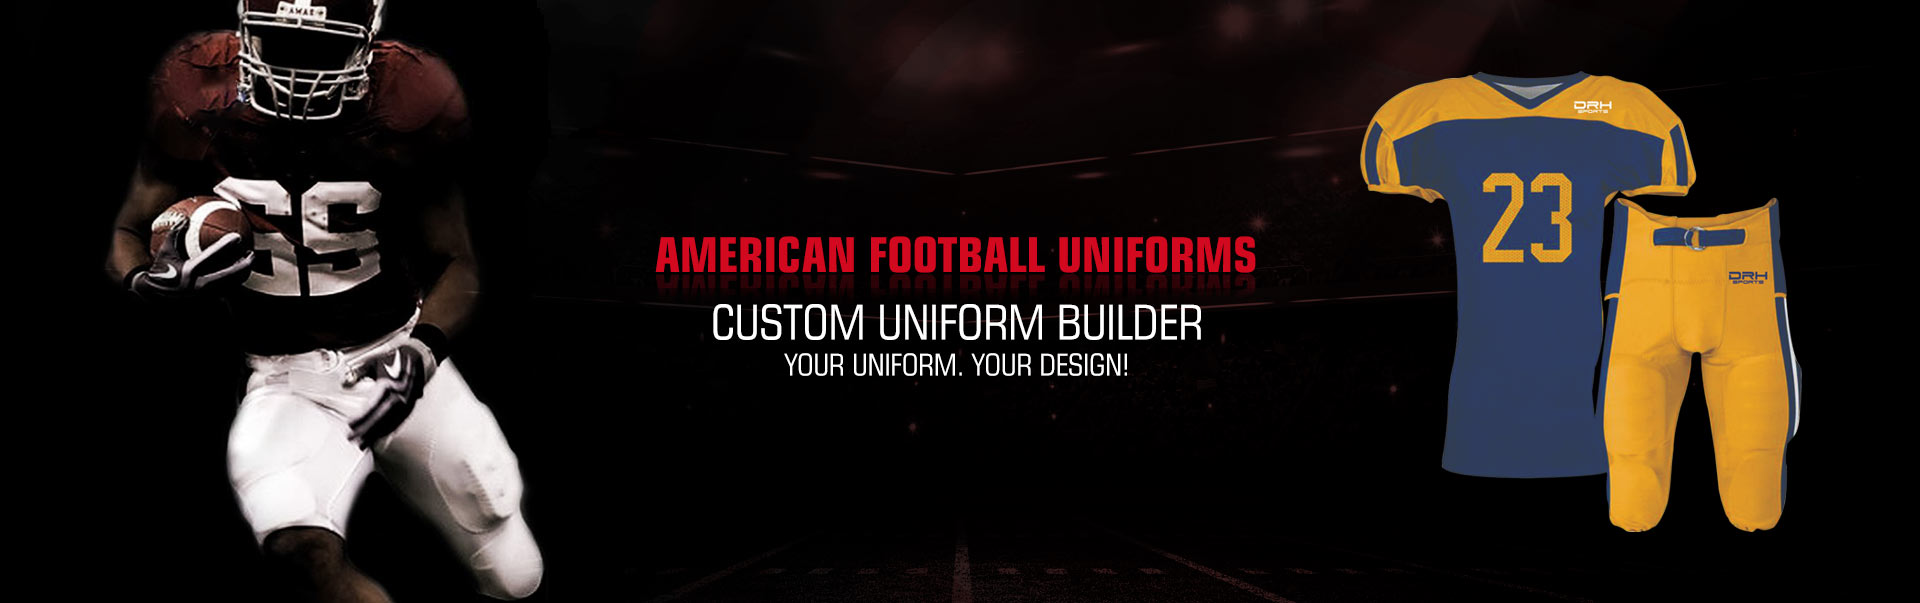 American Football Uniform Wholesaler, Suppliers in Dayton